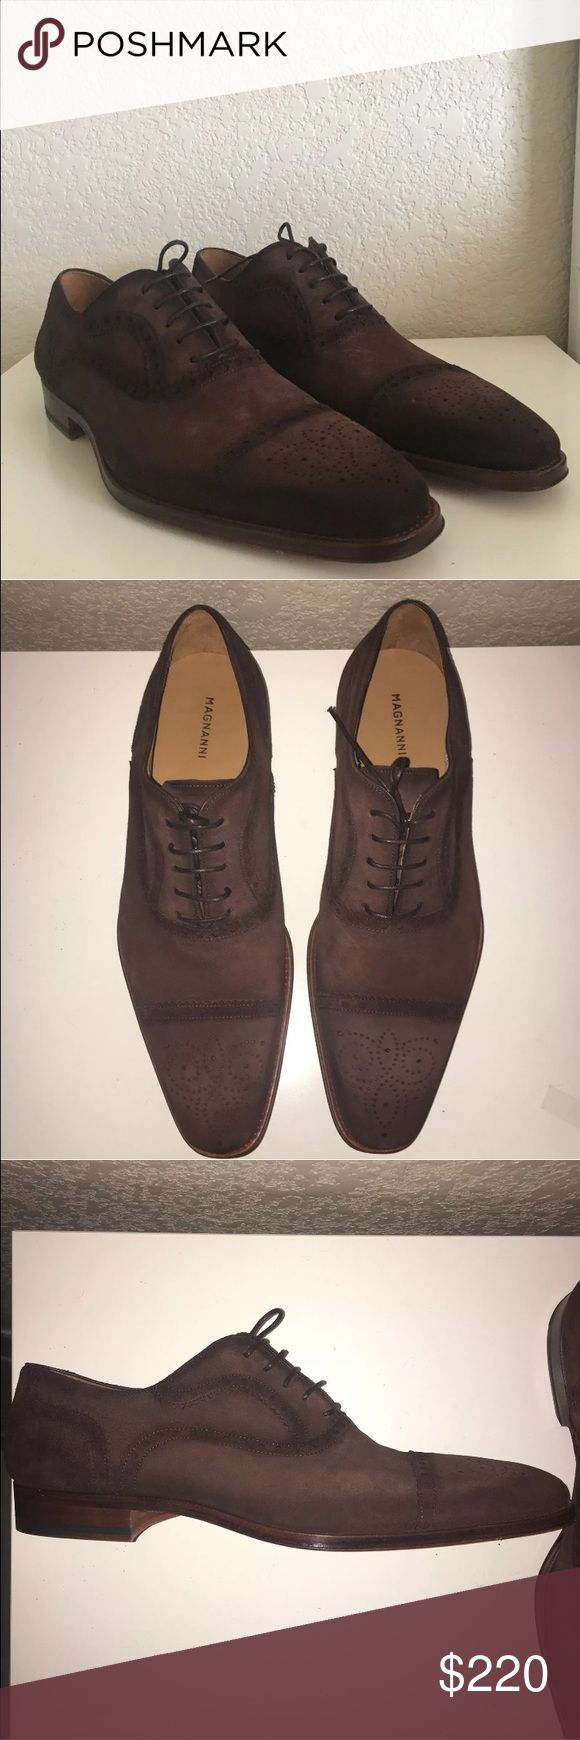 New Magnanni Men's Shoes New without box Magnanni Wing Tip Riley Shoes. Brow...